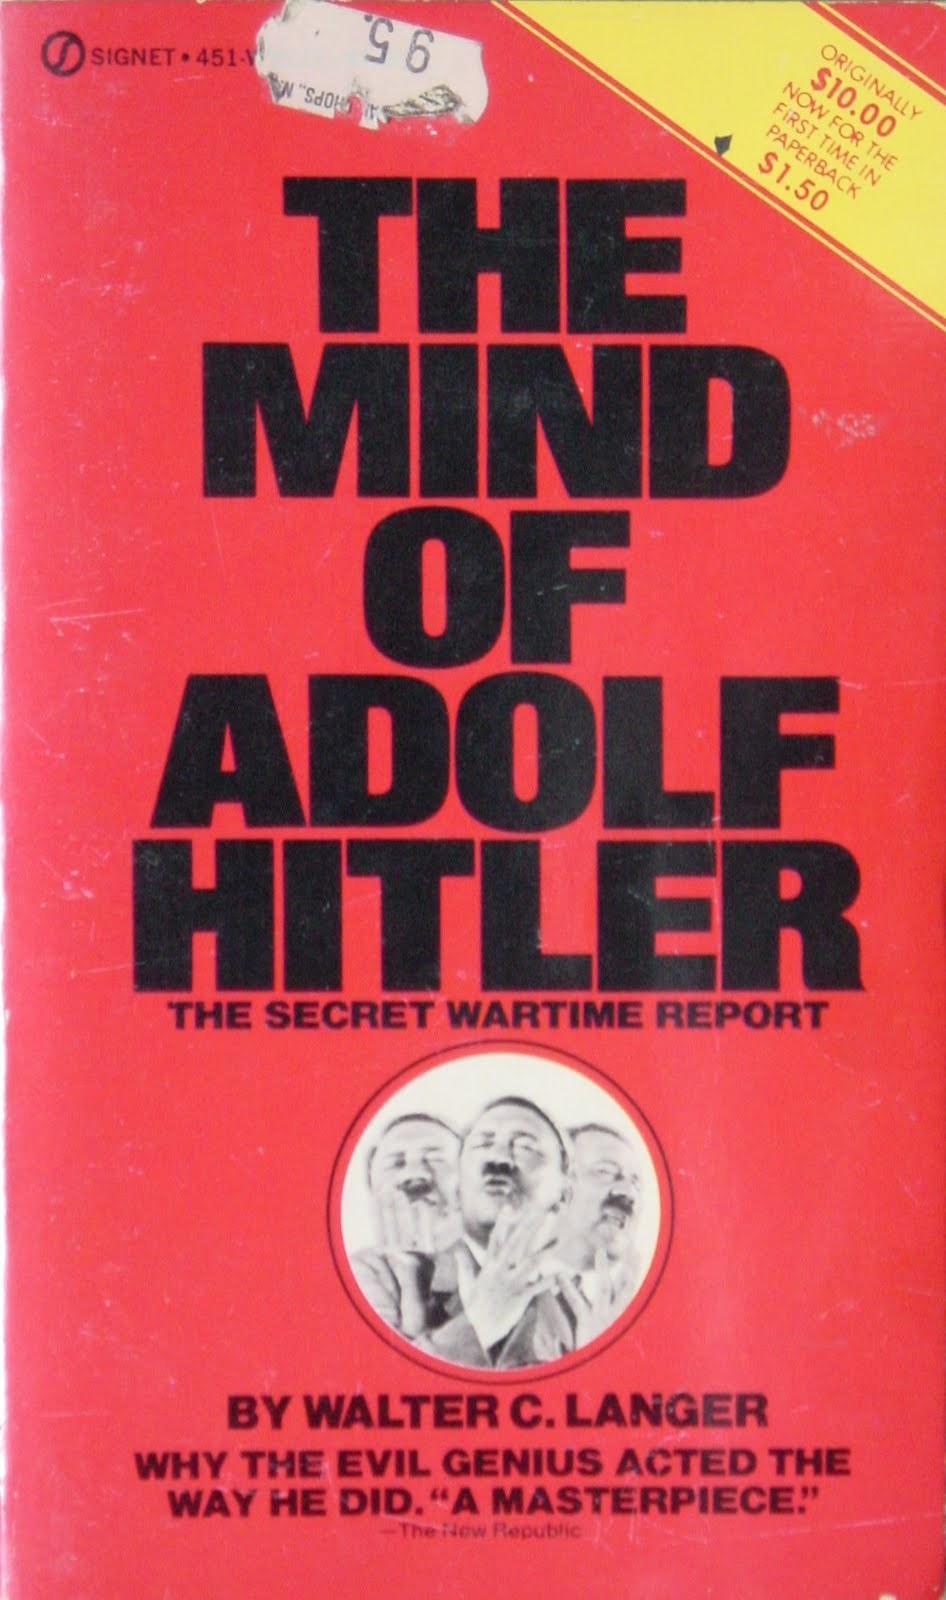 [langer_walter_-_the_mind_of_adolf_hitler_01.jpg]